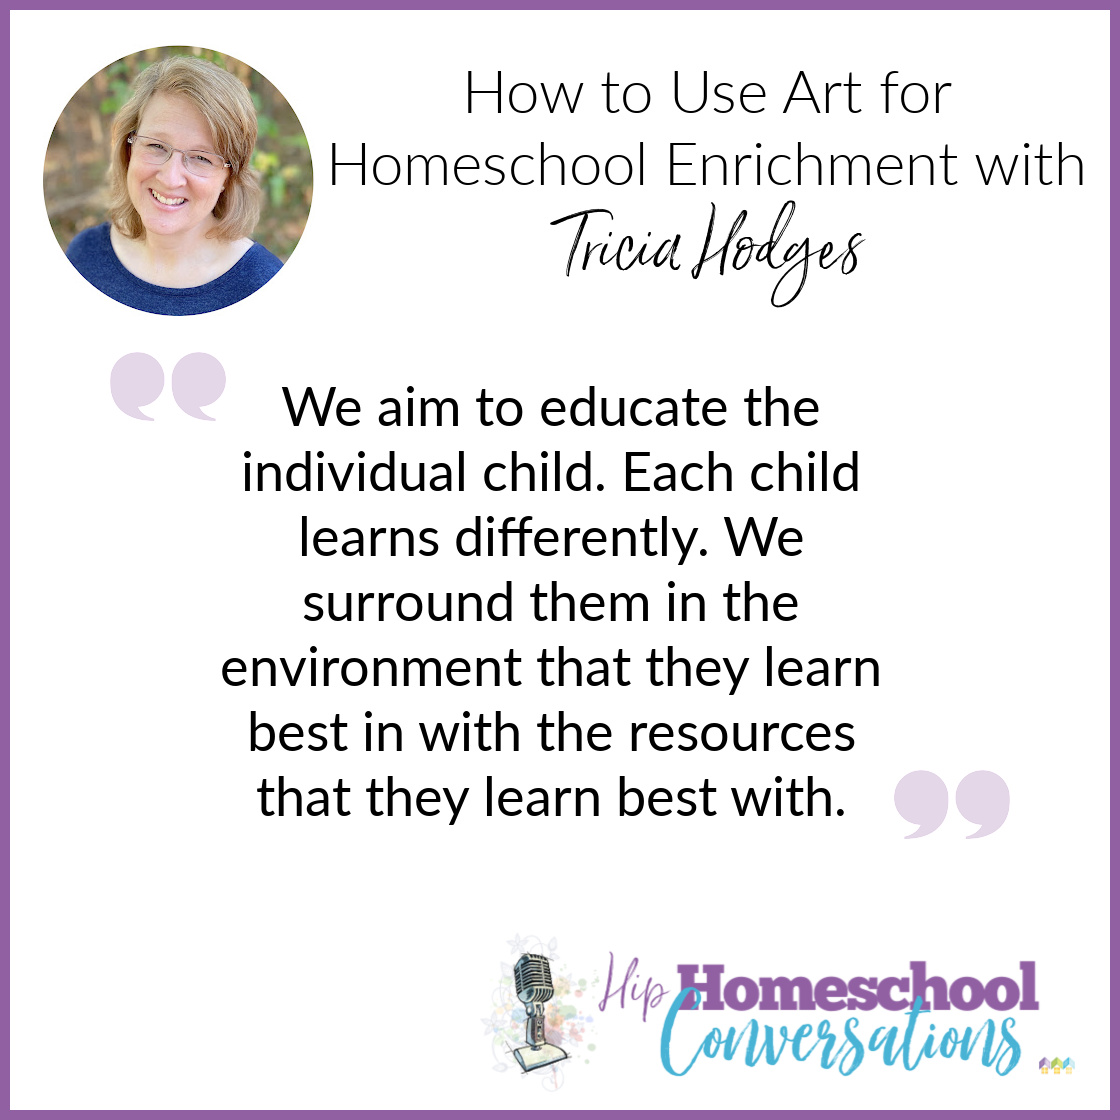 Join us as Tricia discusses how finding subjects that all of your students can do together can be challenging, but art is one way to bring everyone together to create homeschooling memories that you will cherish.